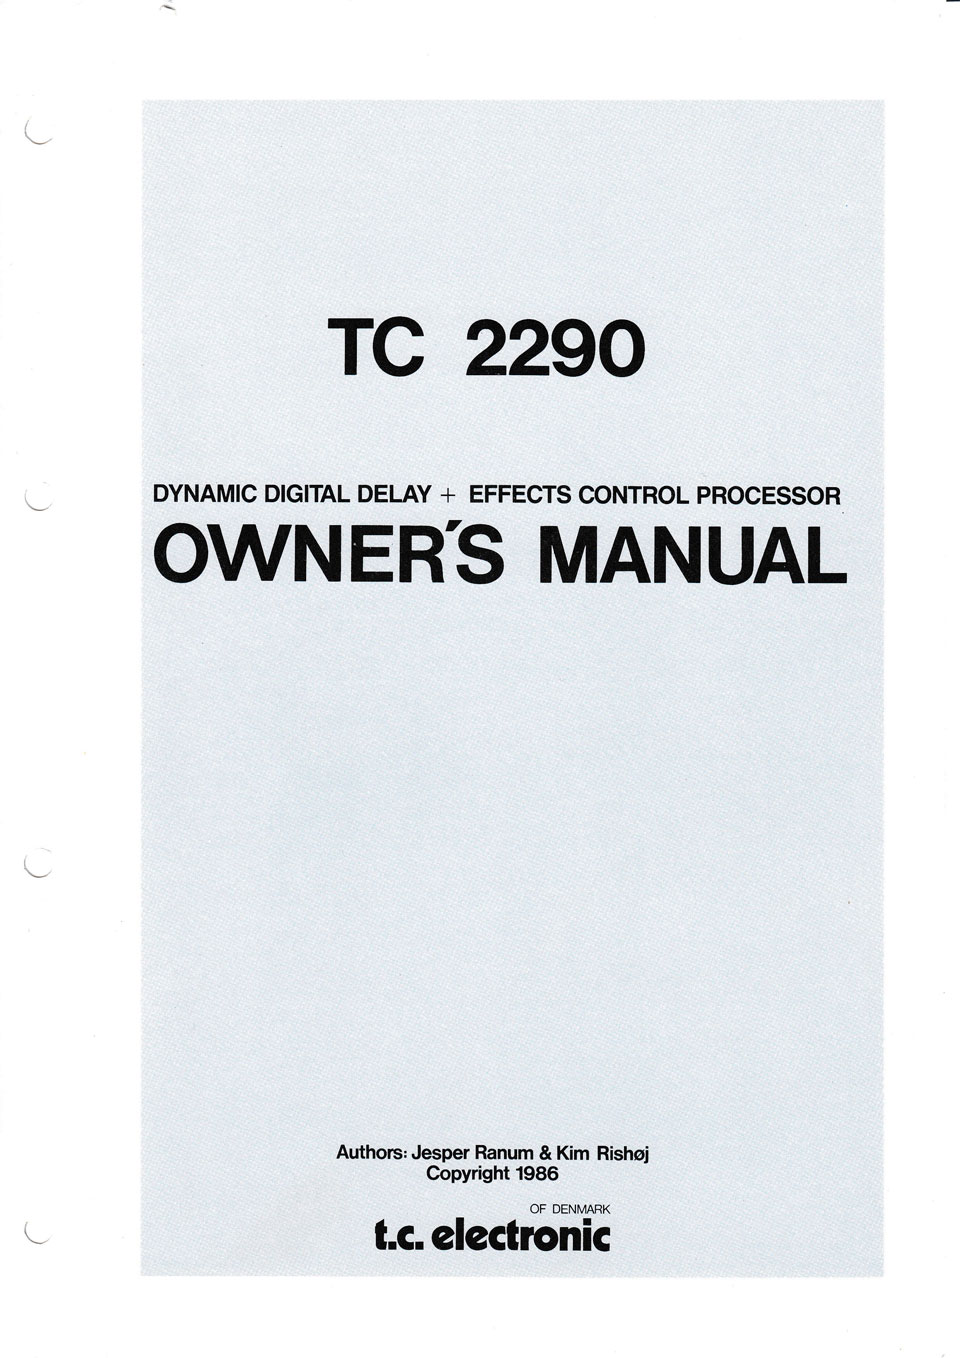 rs-gear-tc2290-manual-front-w960